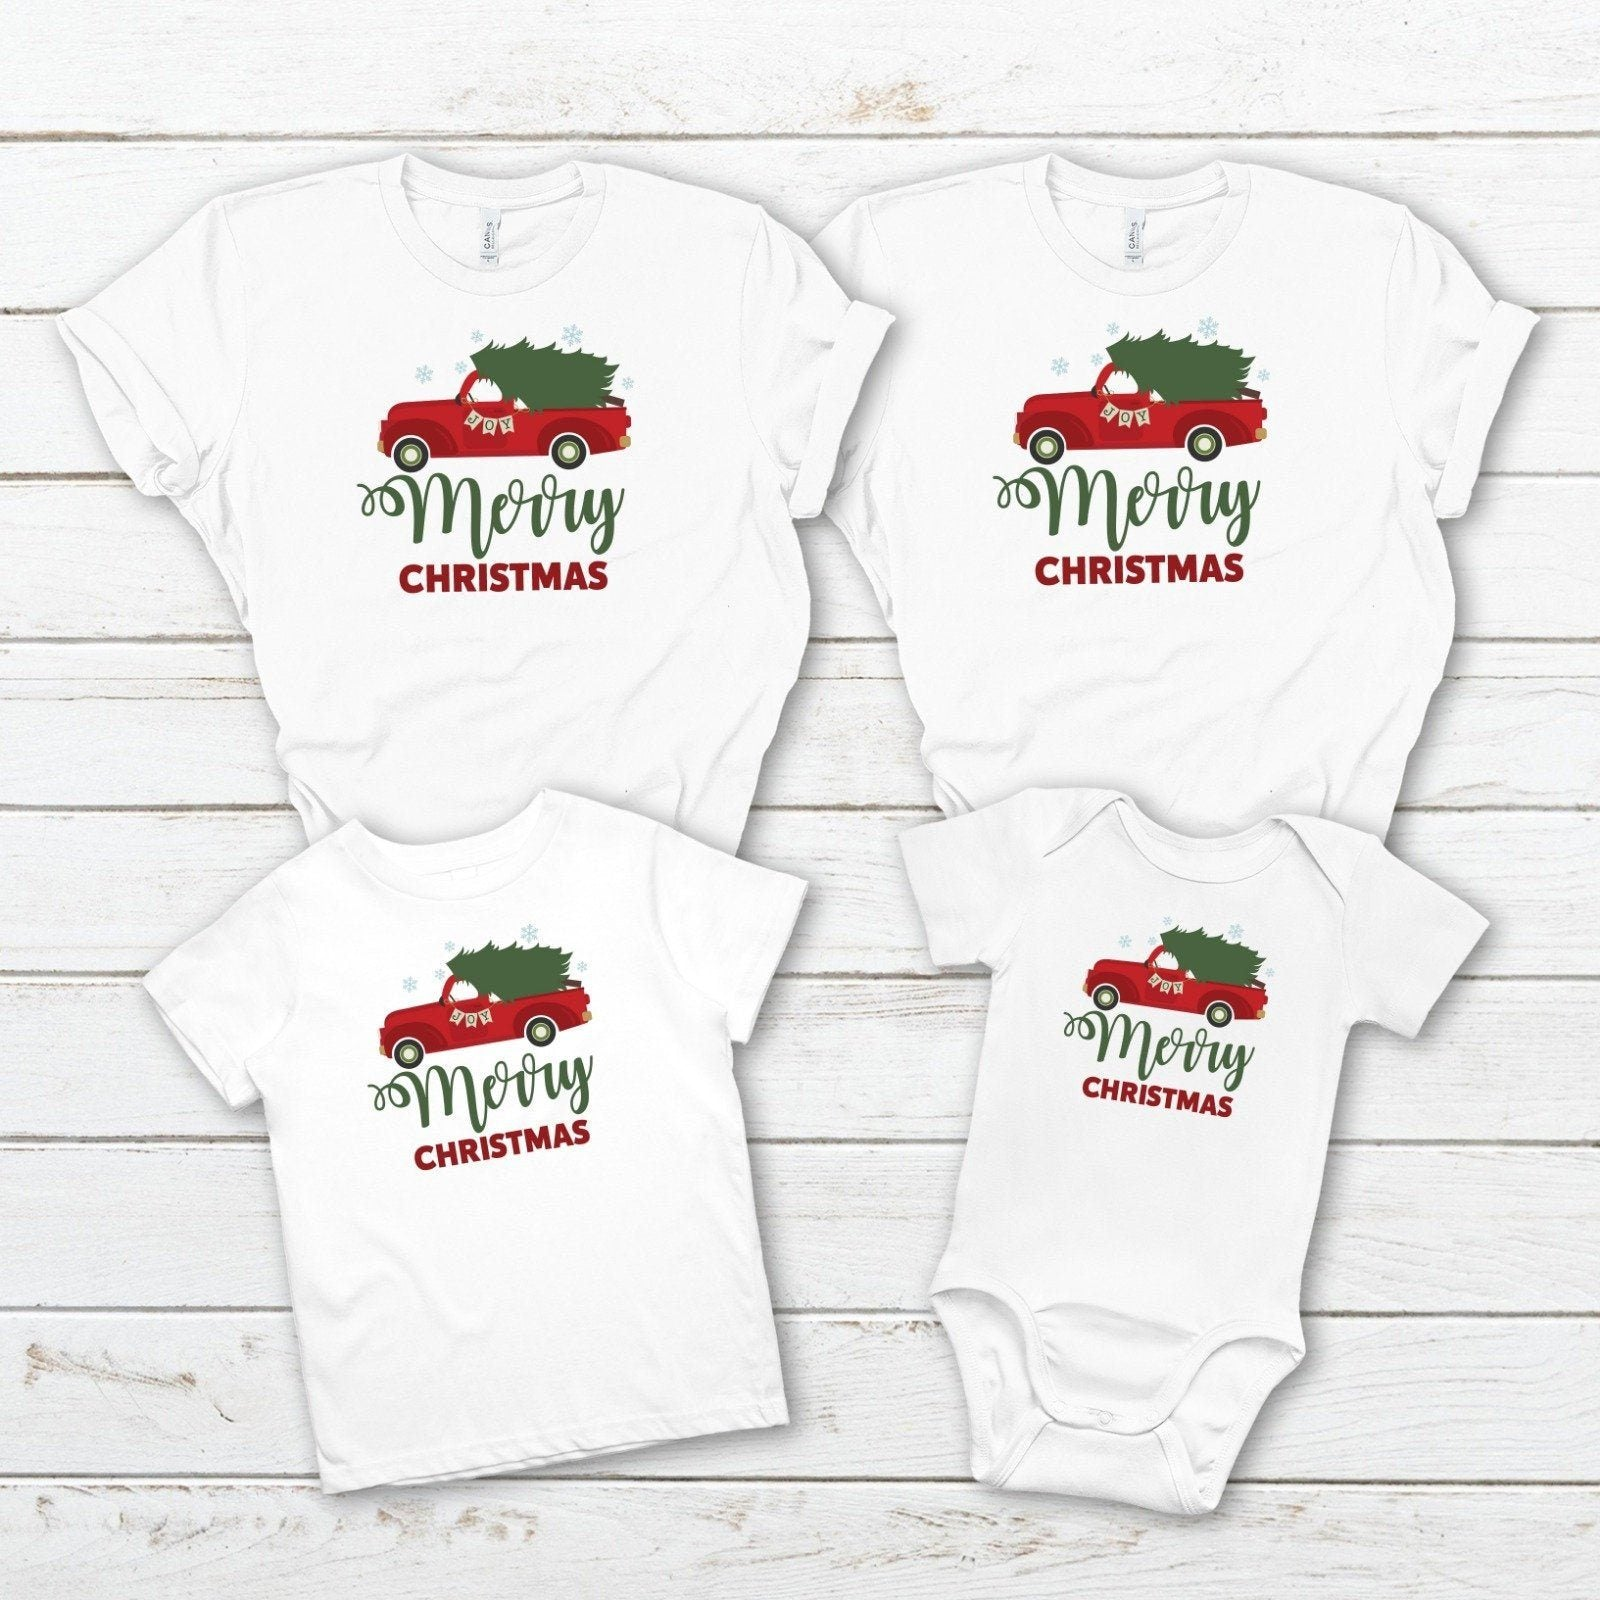 Matching Family Christmas T- shirts with red Christmas truck, Christmas Tshirts, Festive outfit